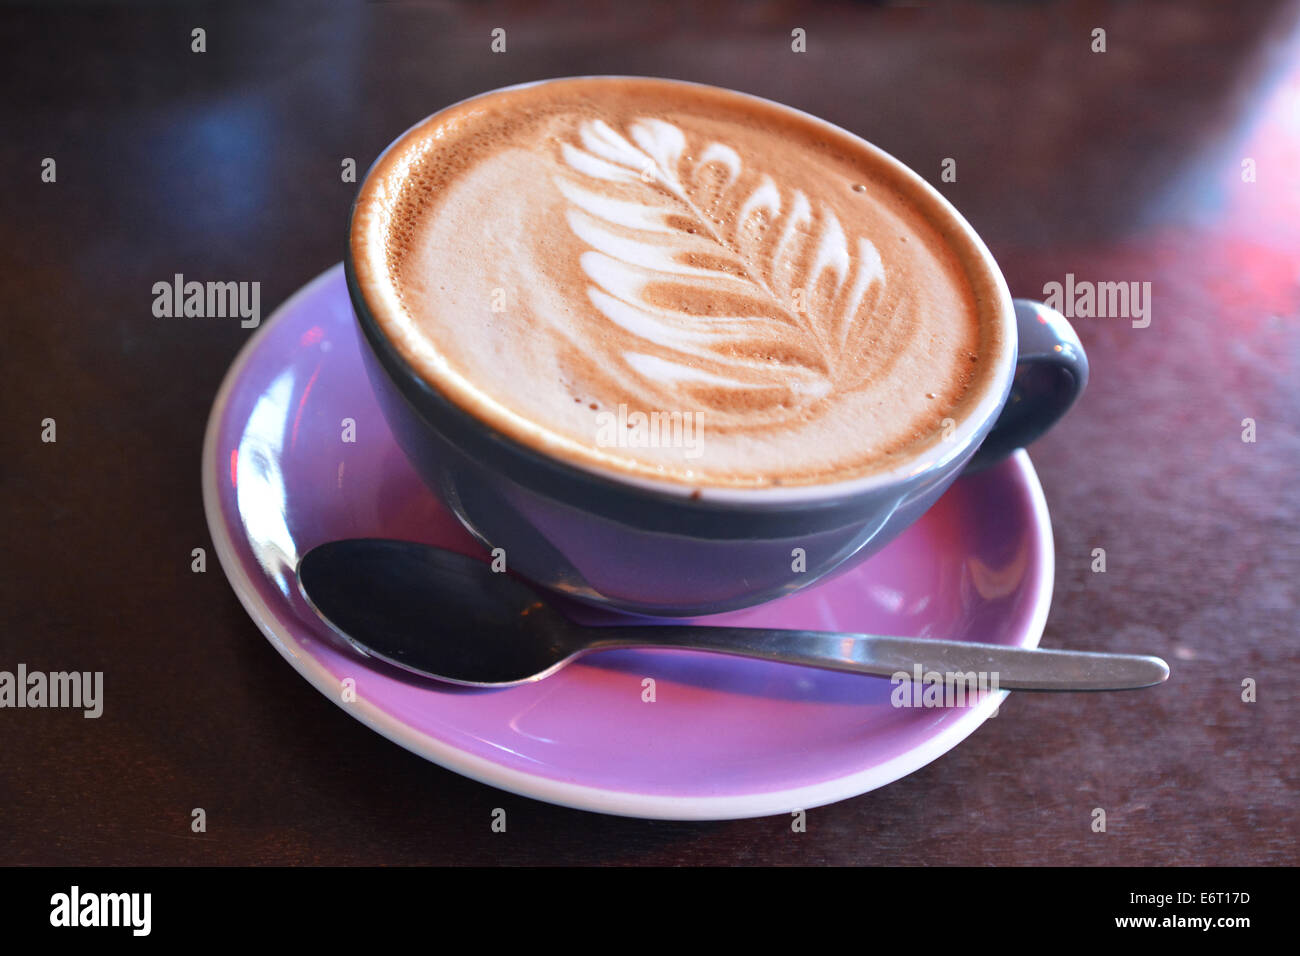 Flat white coffee decorated with the New Zealand iconic symbol the silver fern on it. Copy space - Stock Image